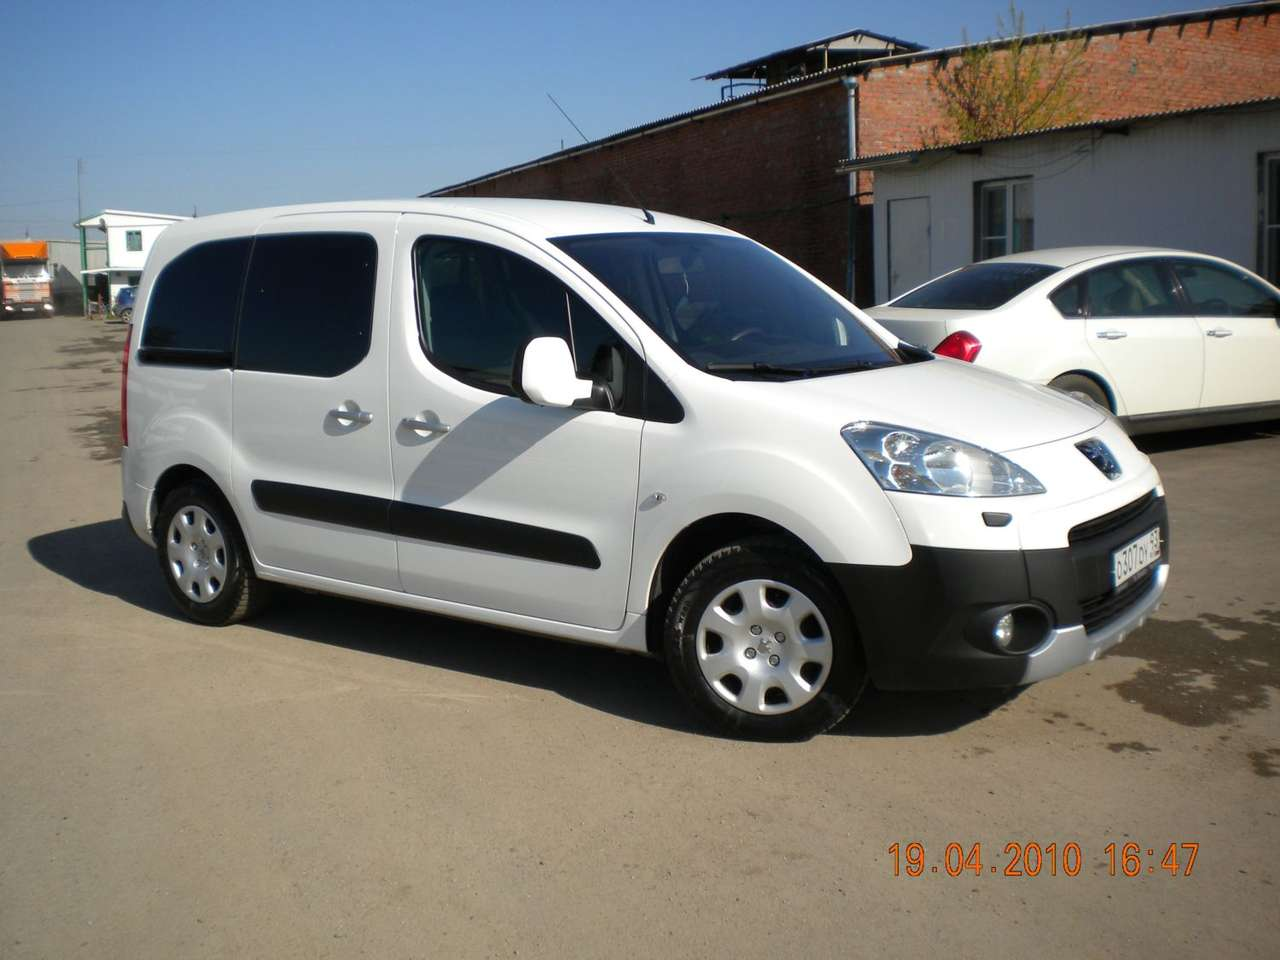 Used 2008 Peugeot Partner Tepee Photos, 1600cc., Gasoline, FF, Manual For Sale